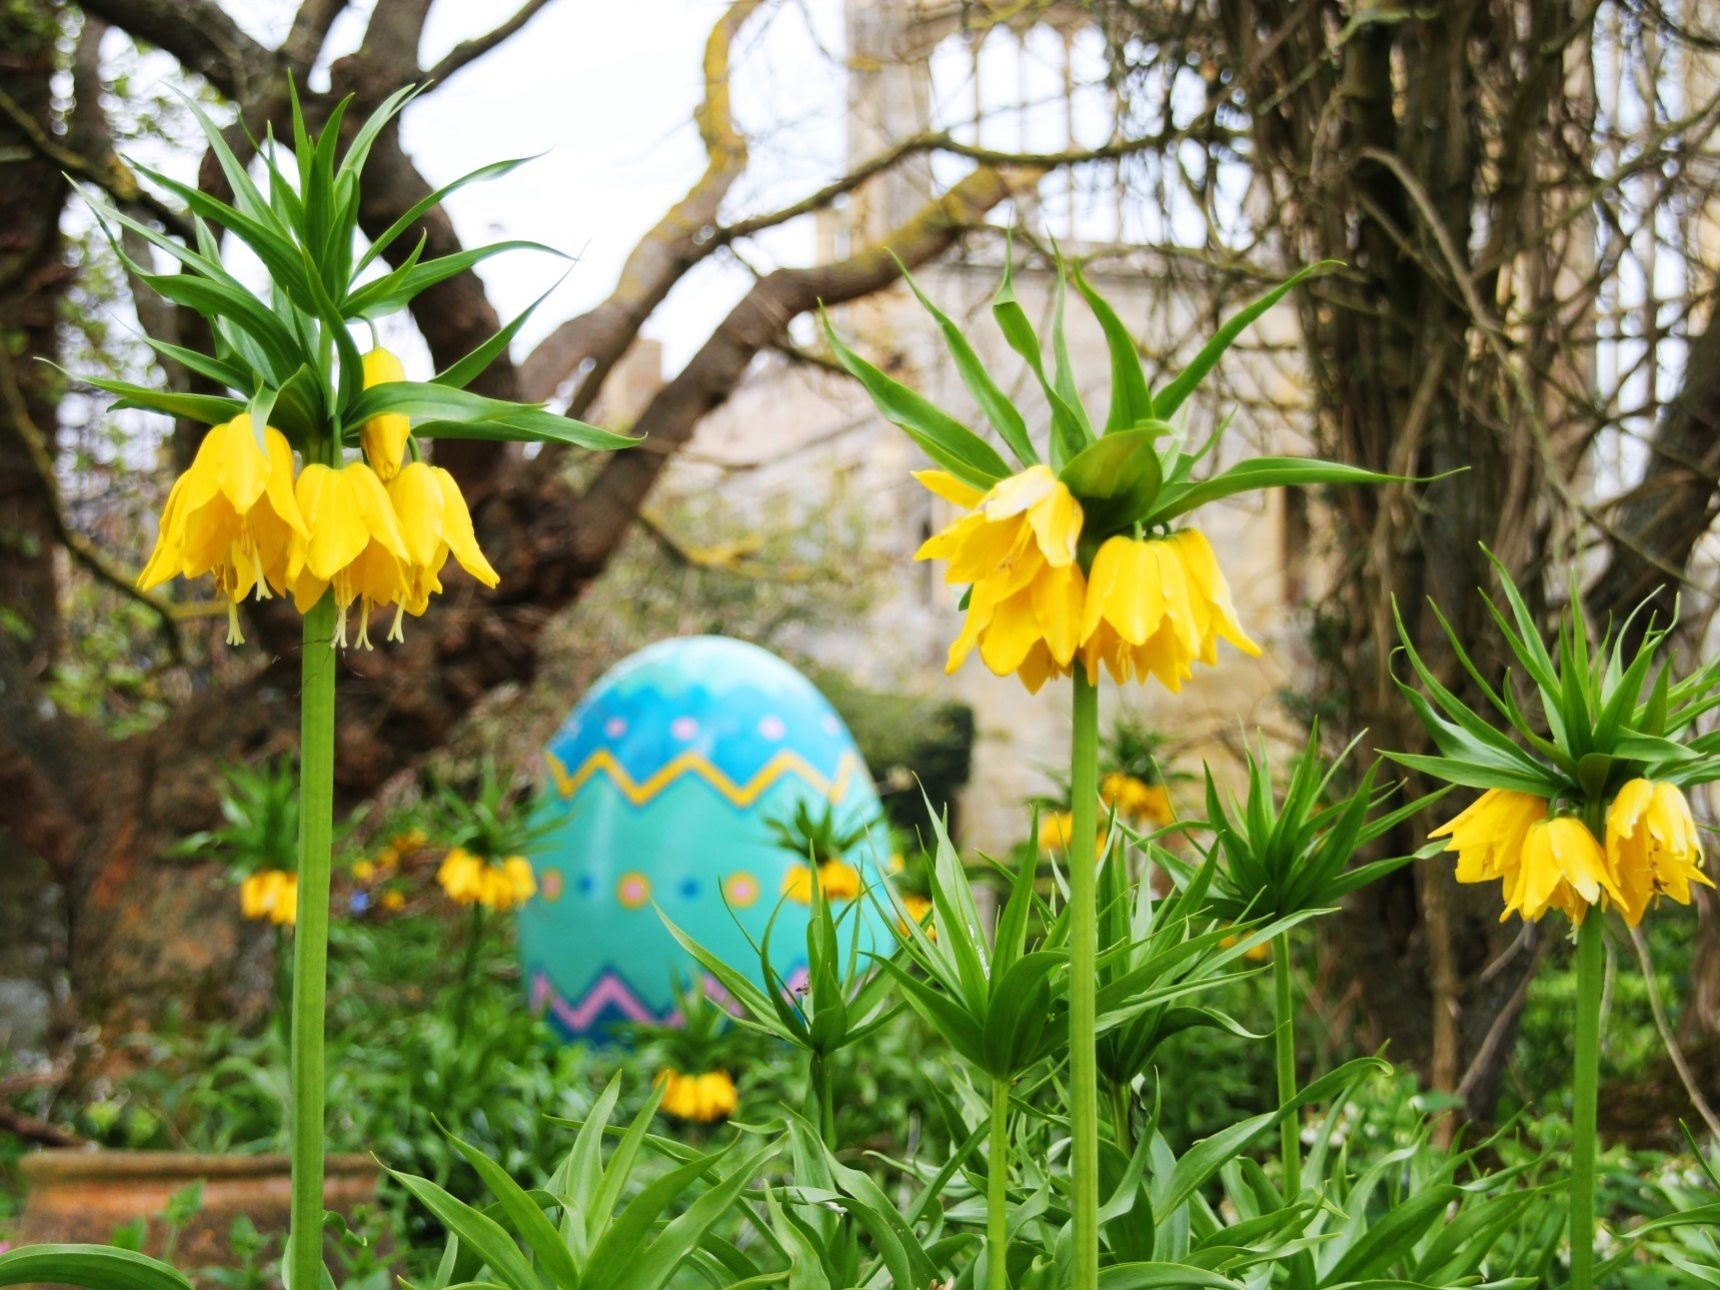 Giant egg behind Fritillaria Crown Imperial Flowers